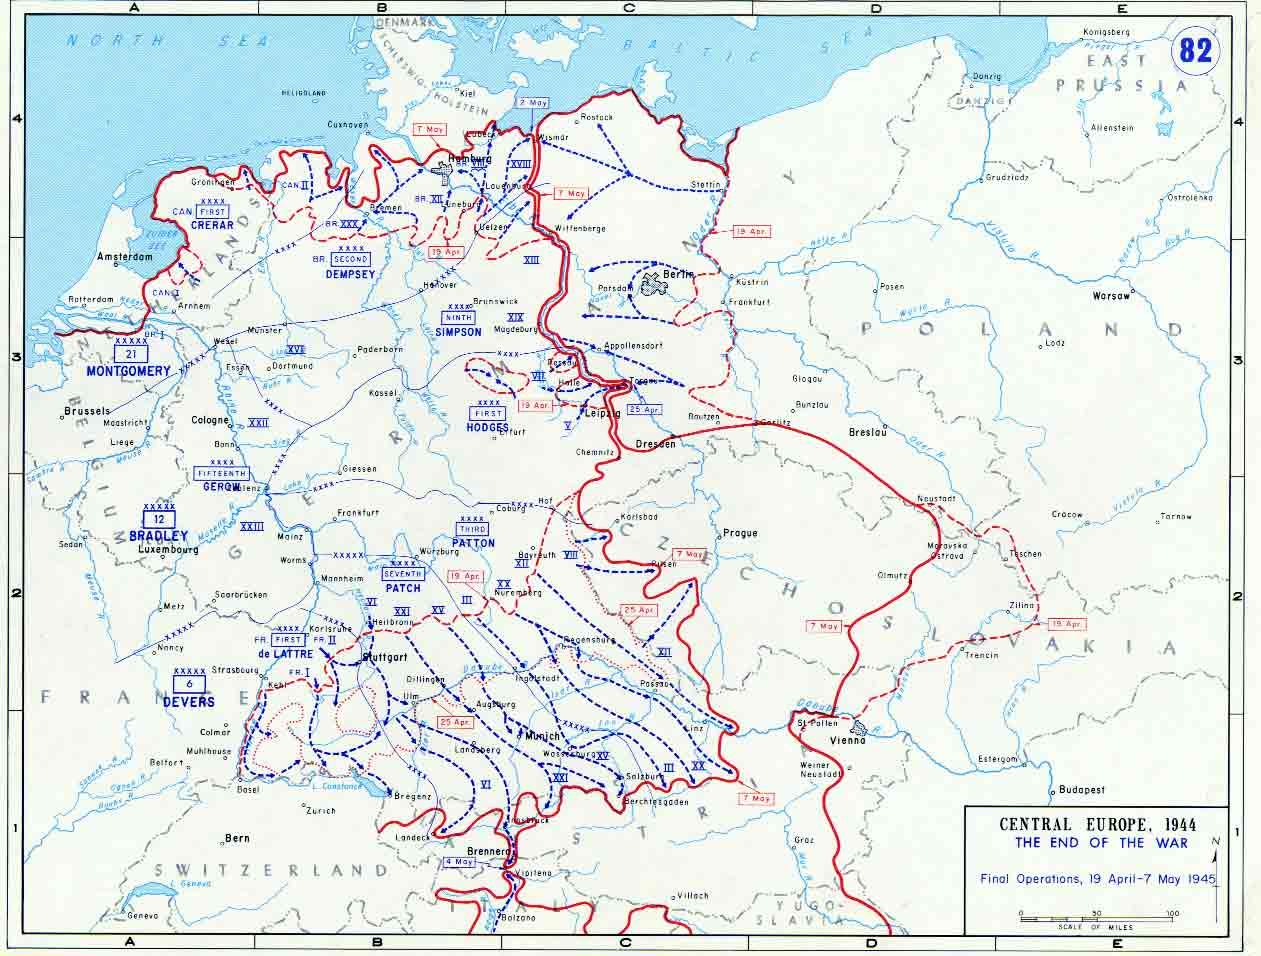 Map of Final Allied Operations of World War II (April-May 1945)